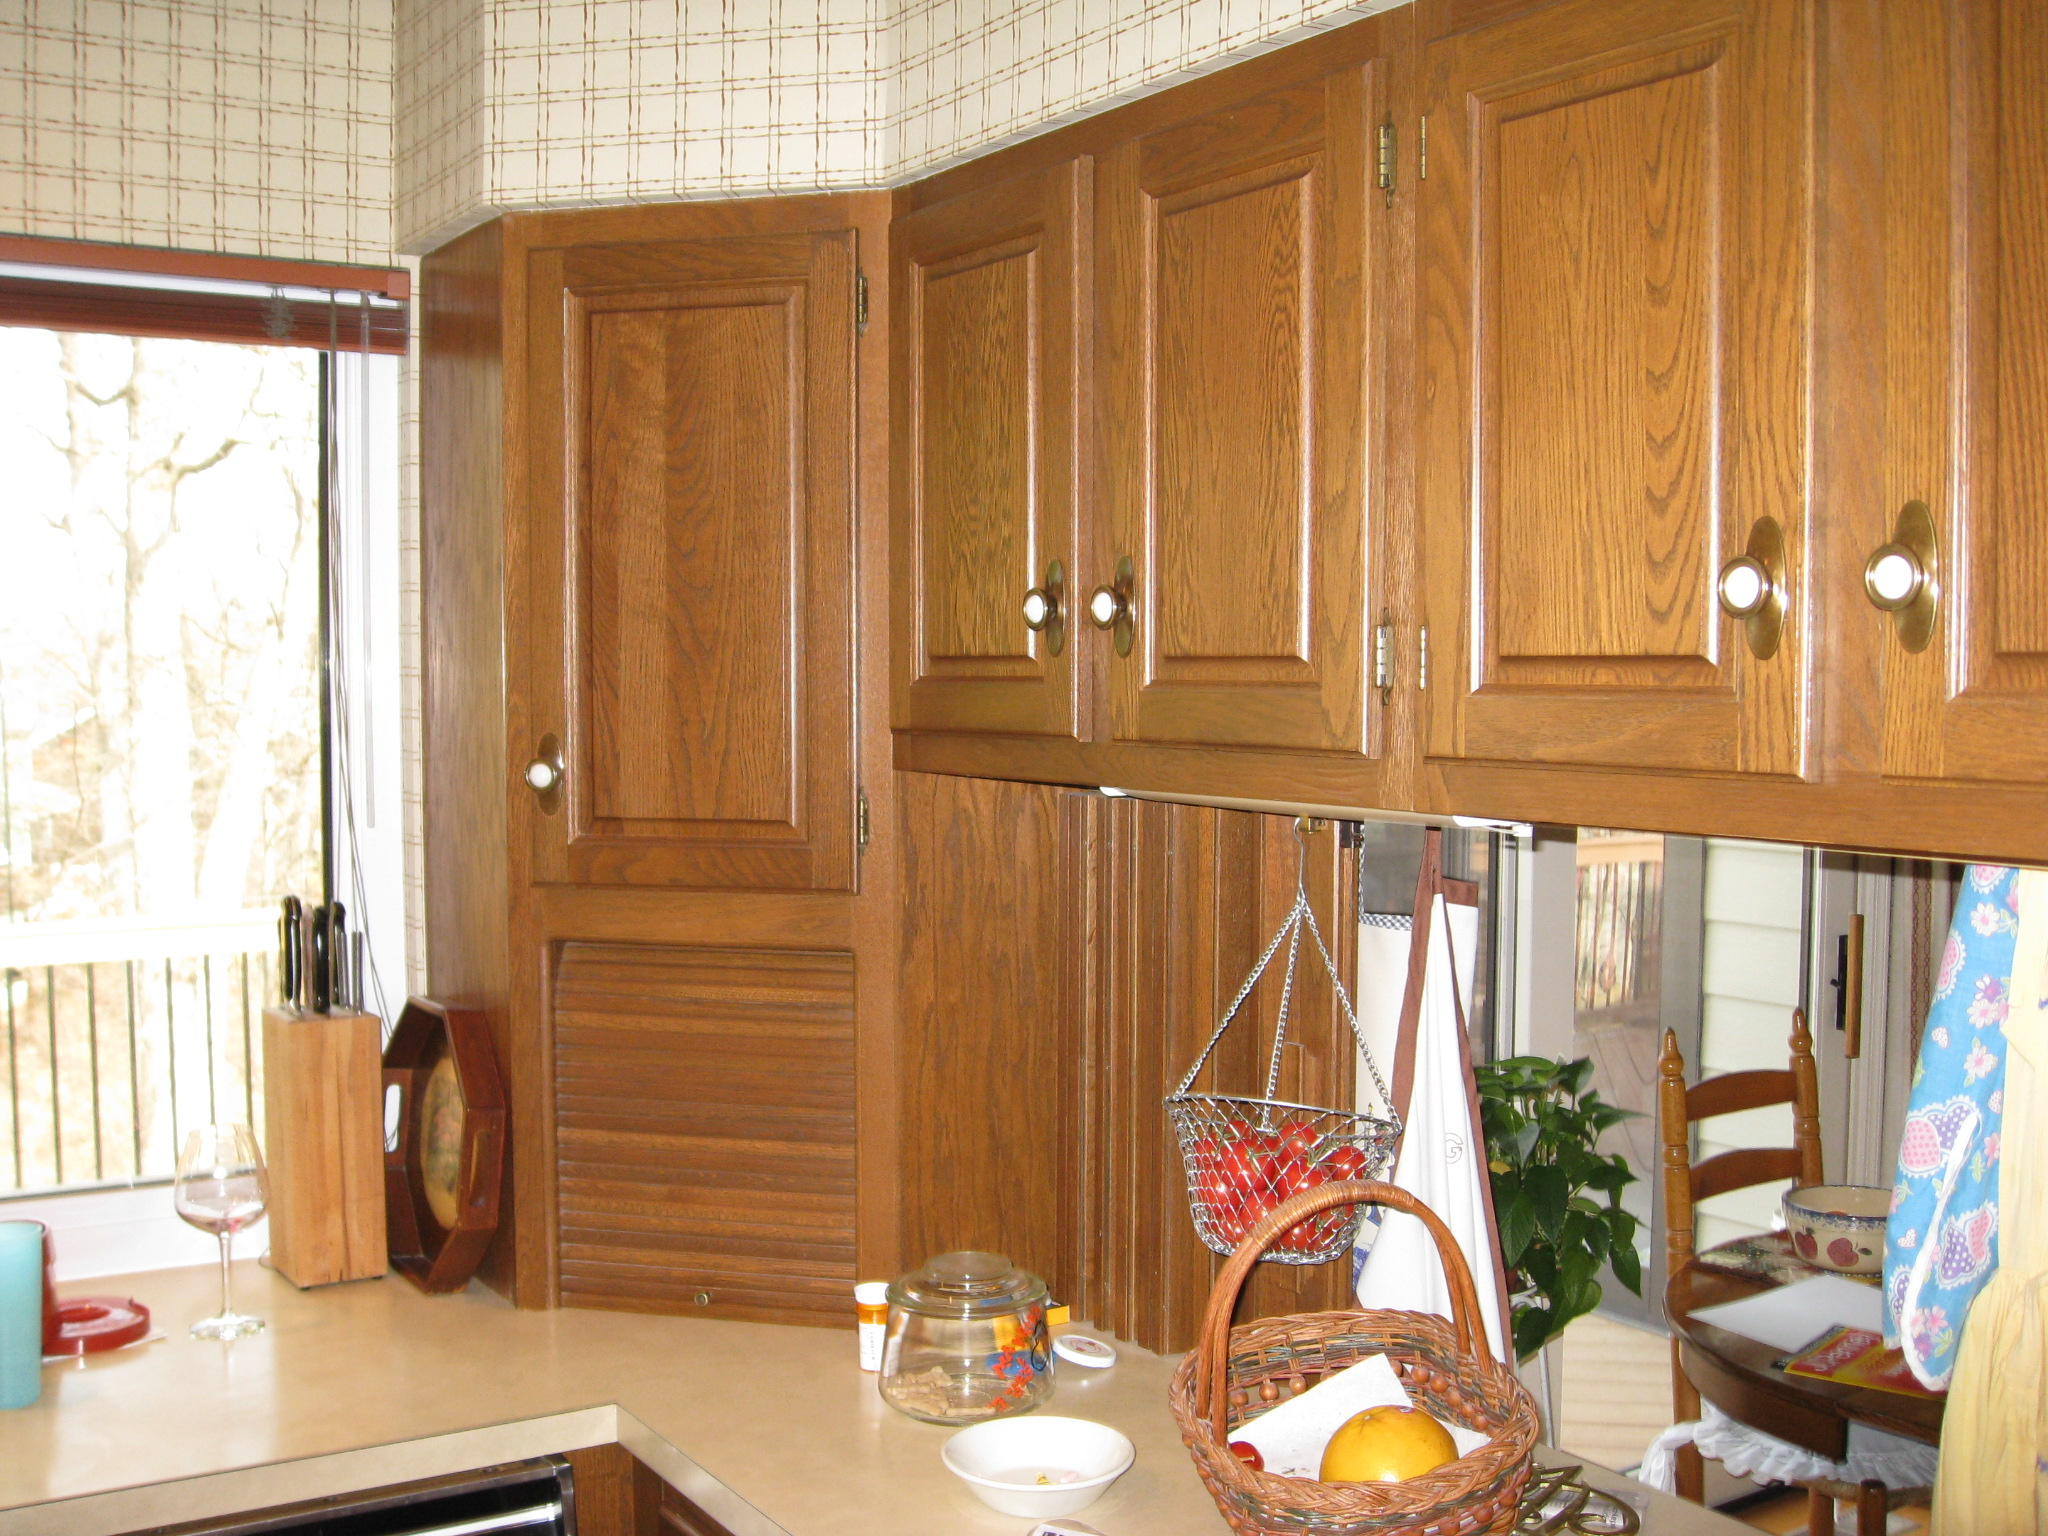 beforea gray counter brown new sale of best stone replacing formica cheap kitchen j excellent laminate size lamctp for near full countertop granite countertops cost